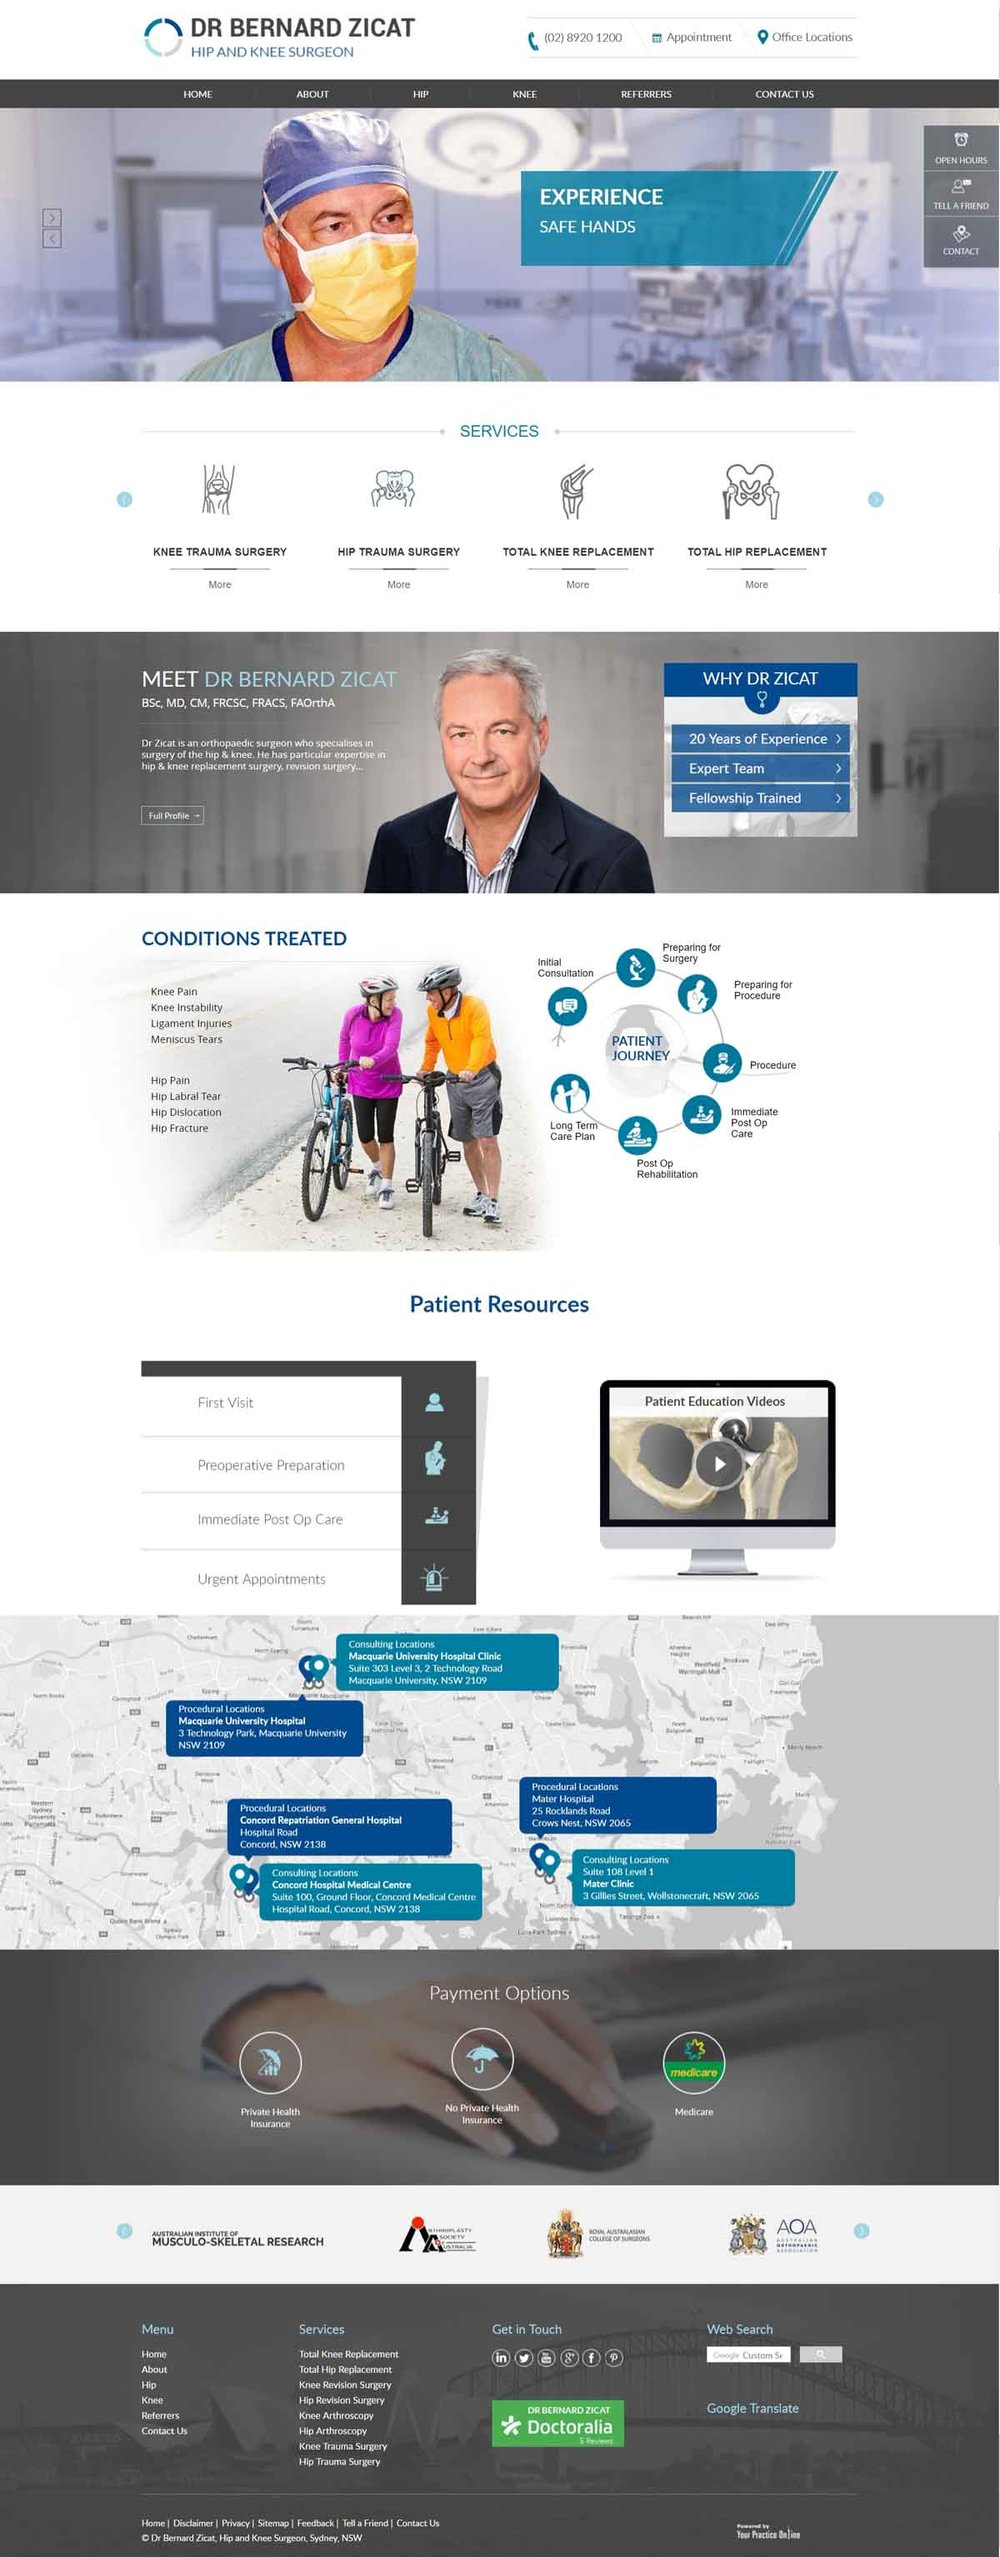 Sydney Hip & Knee Surgeon Website